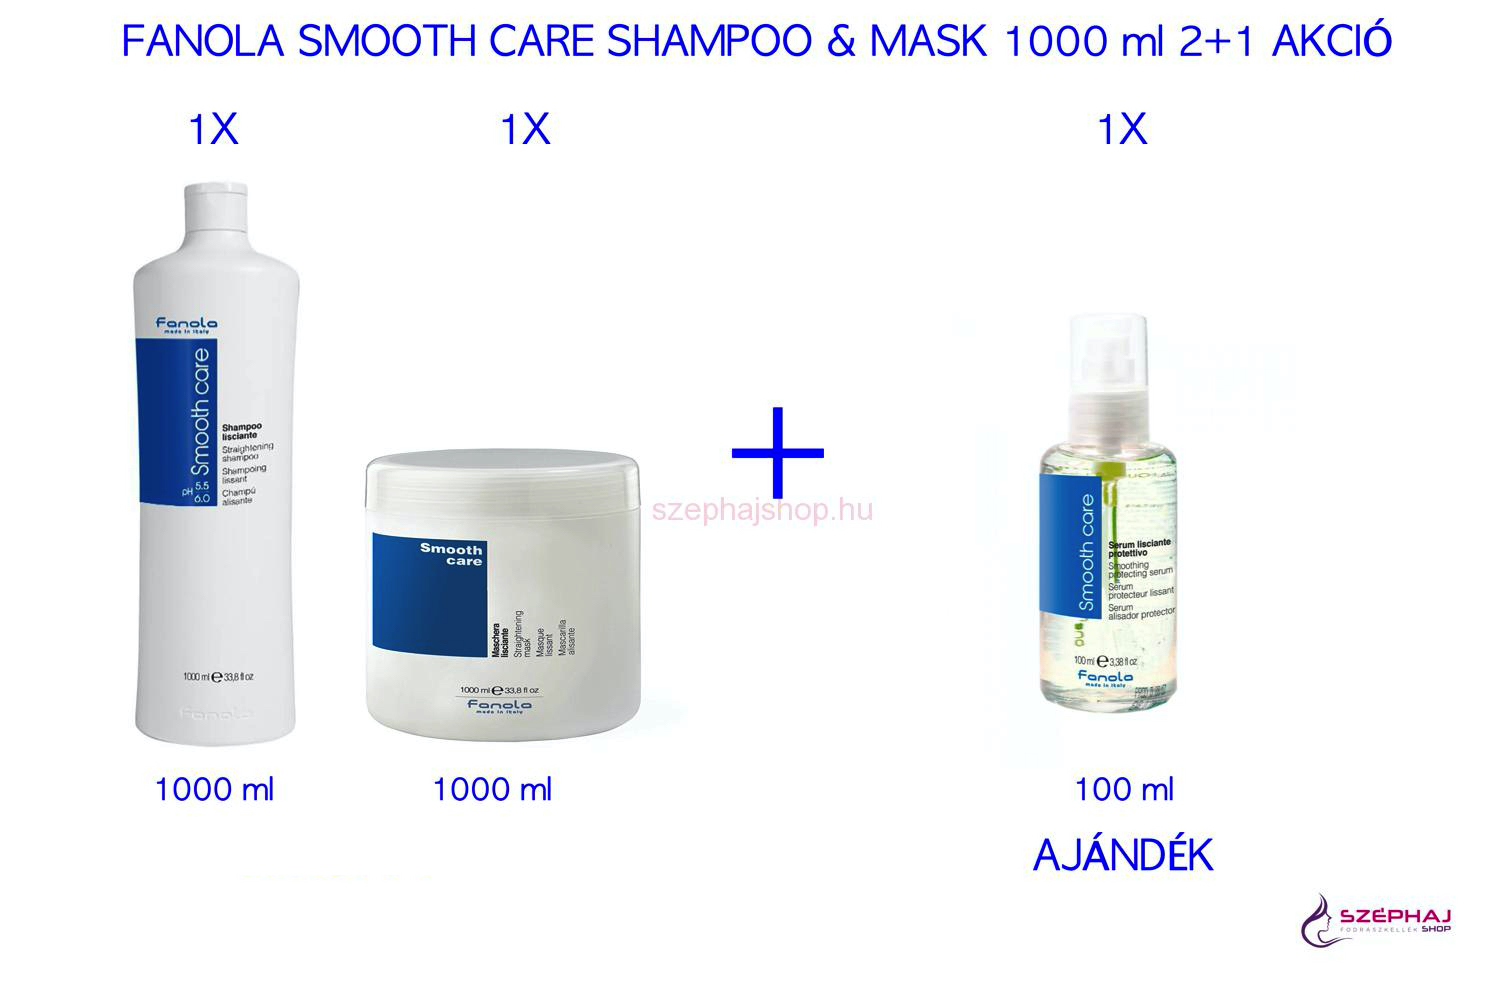 FANOLA Smooth Care Shampoo & Mask 1000 ml 2+1 AKCIÓ